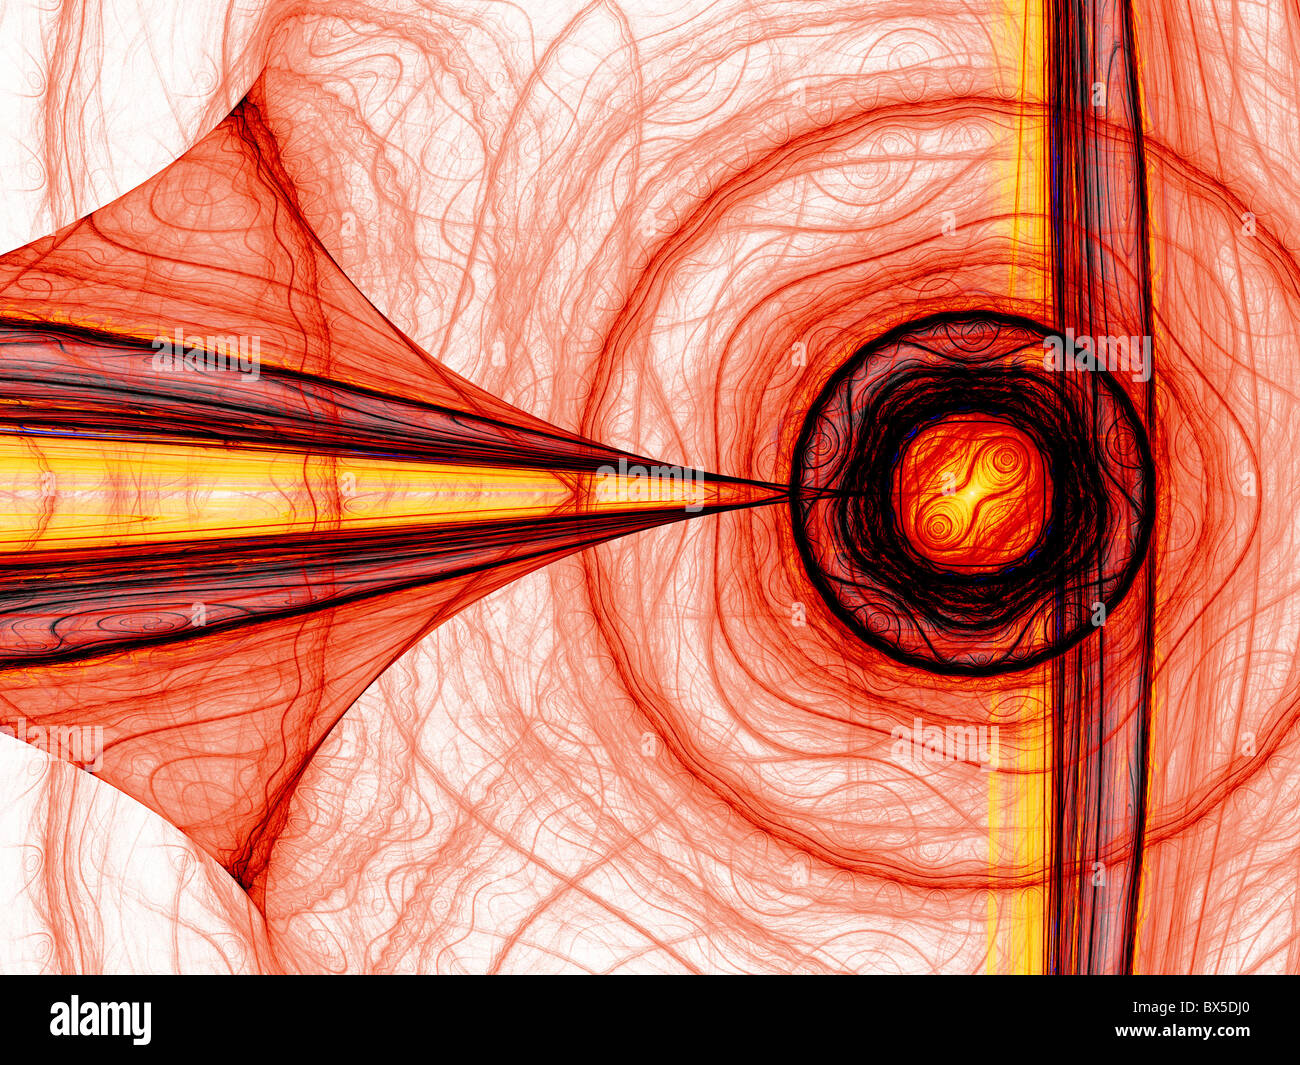 Abstract computer generated red energy fractal. Good as background or wallpaper. Stock Photo